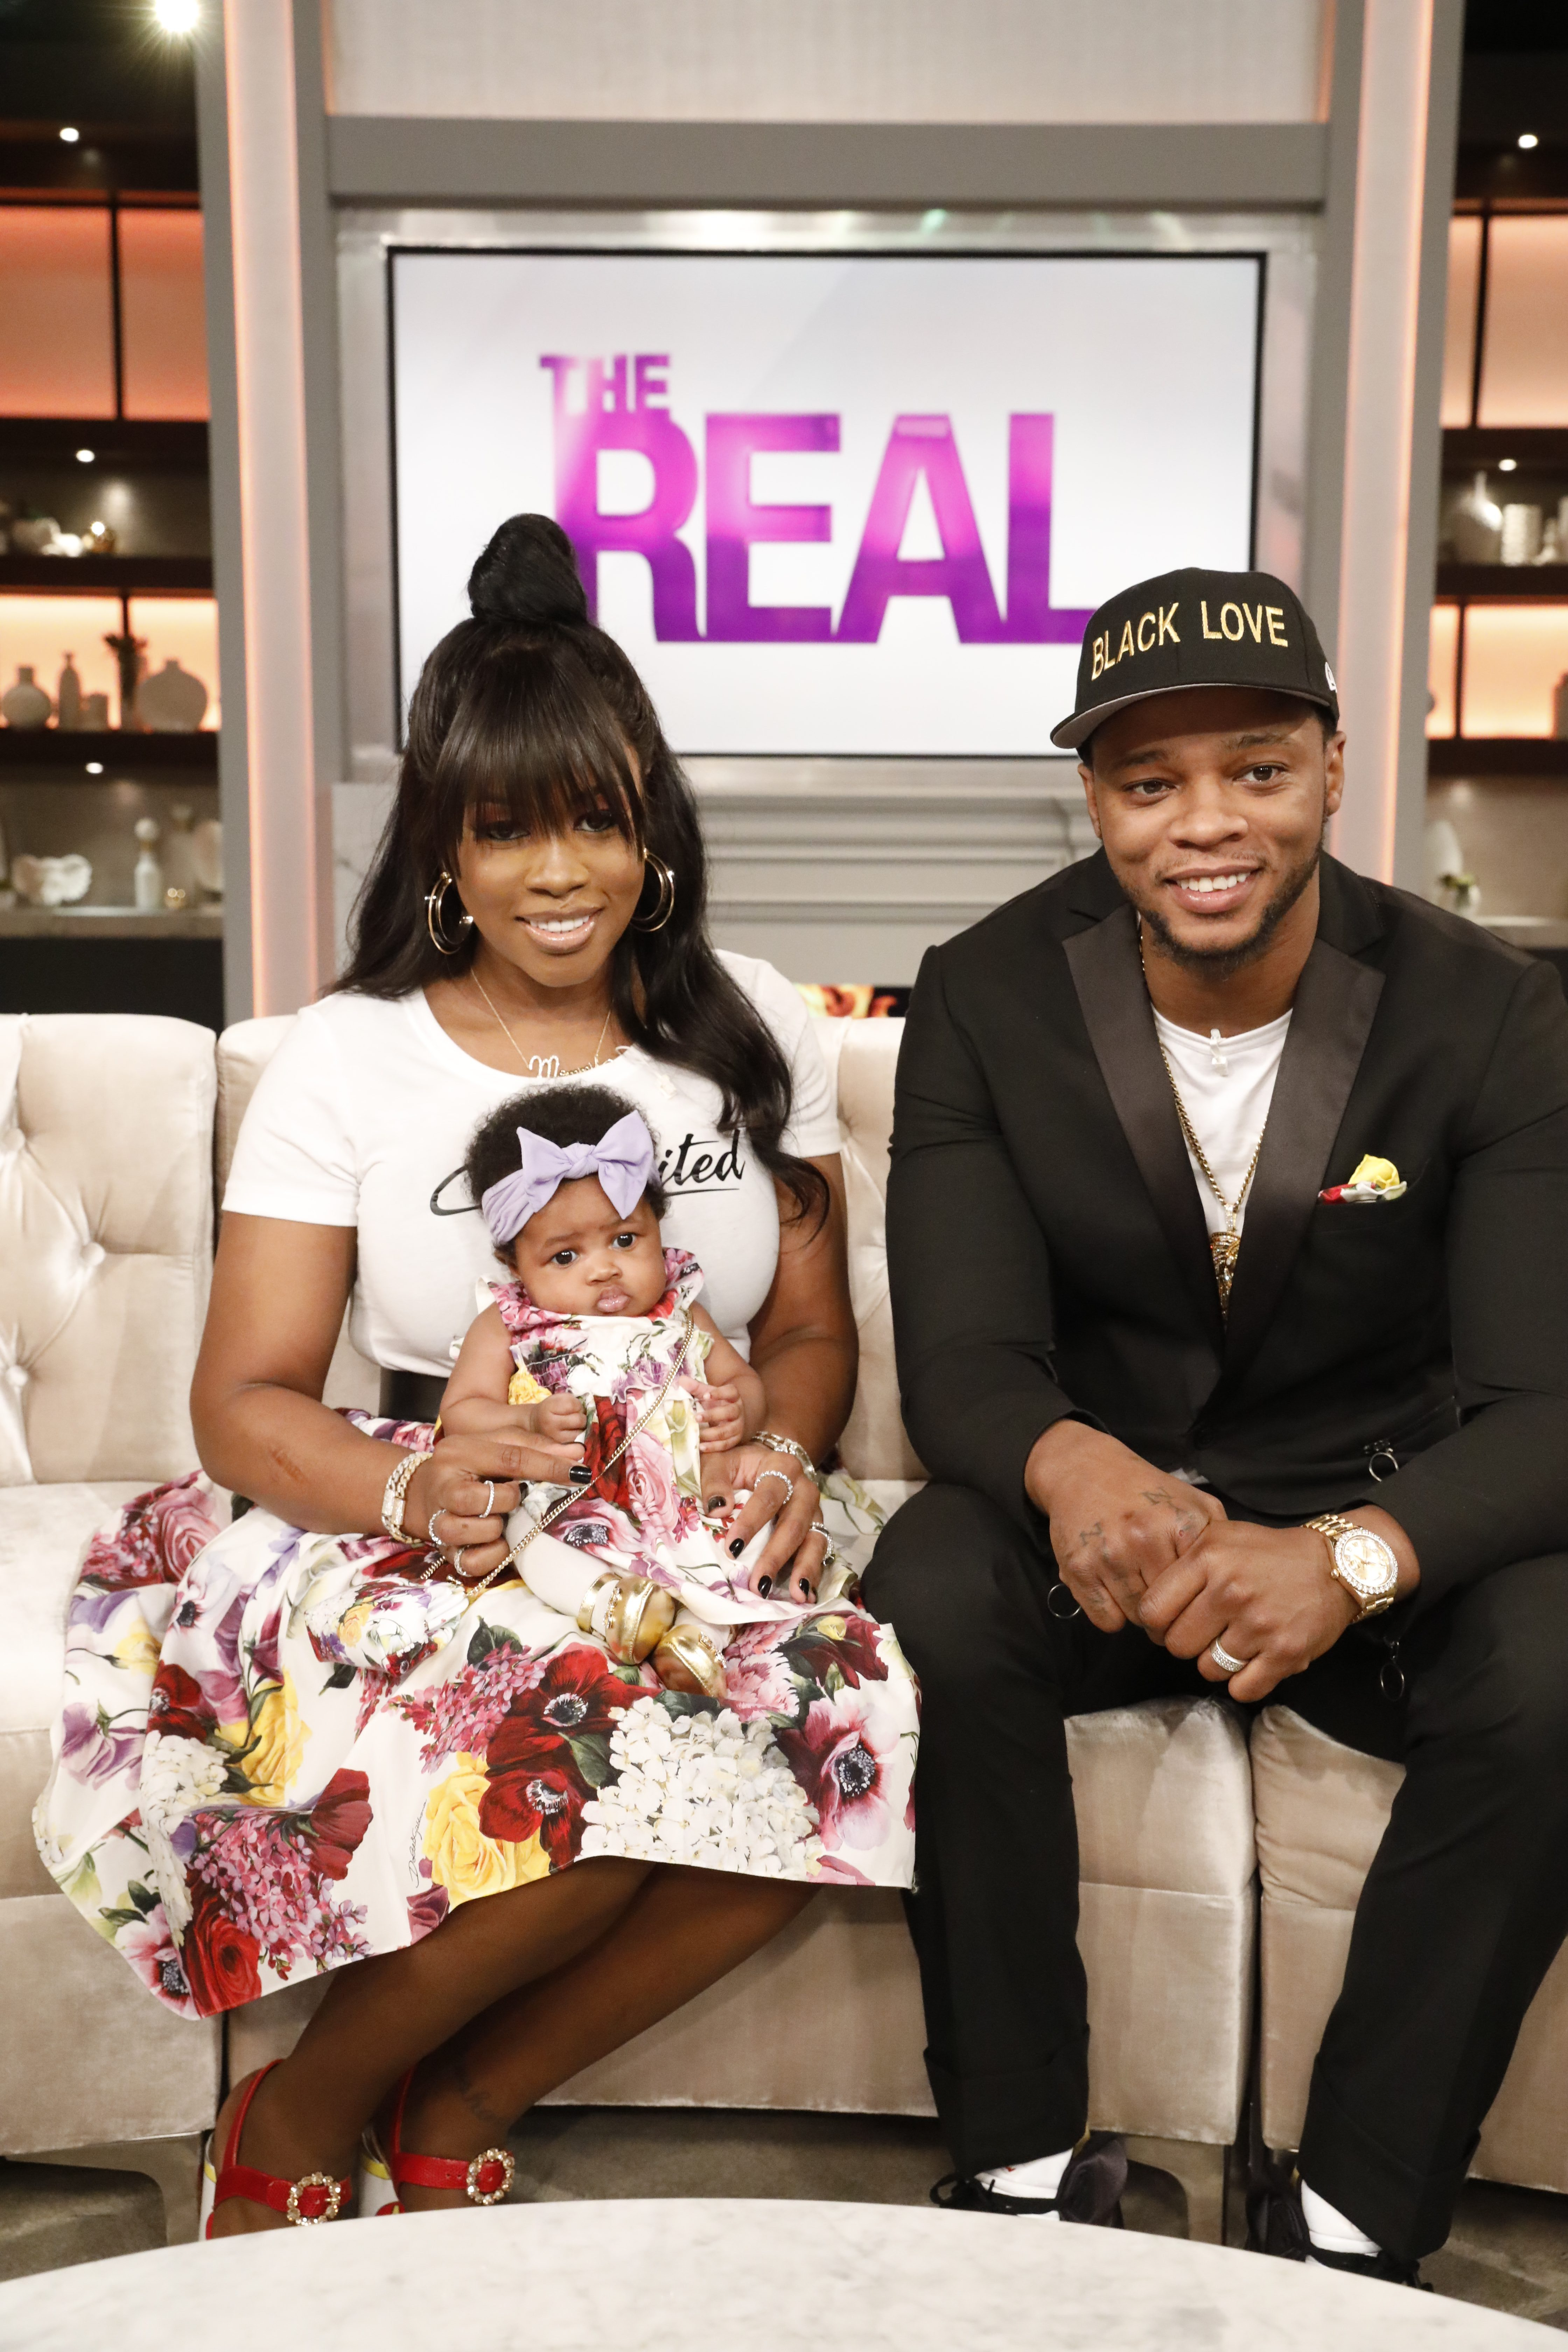 In Case You Missed It: Rapper Remy Ma & Papoose On The Real